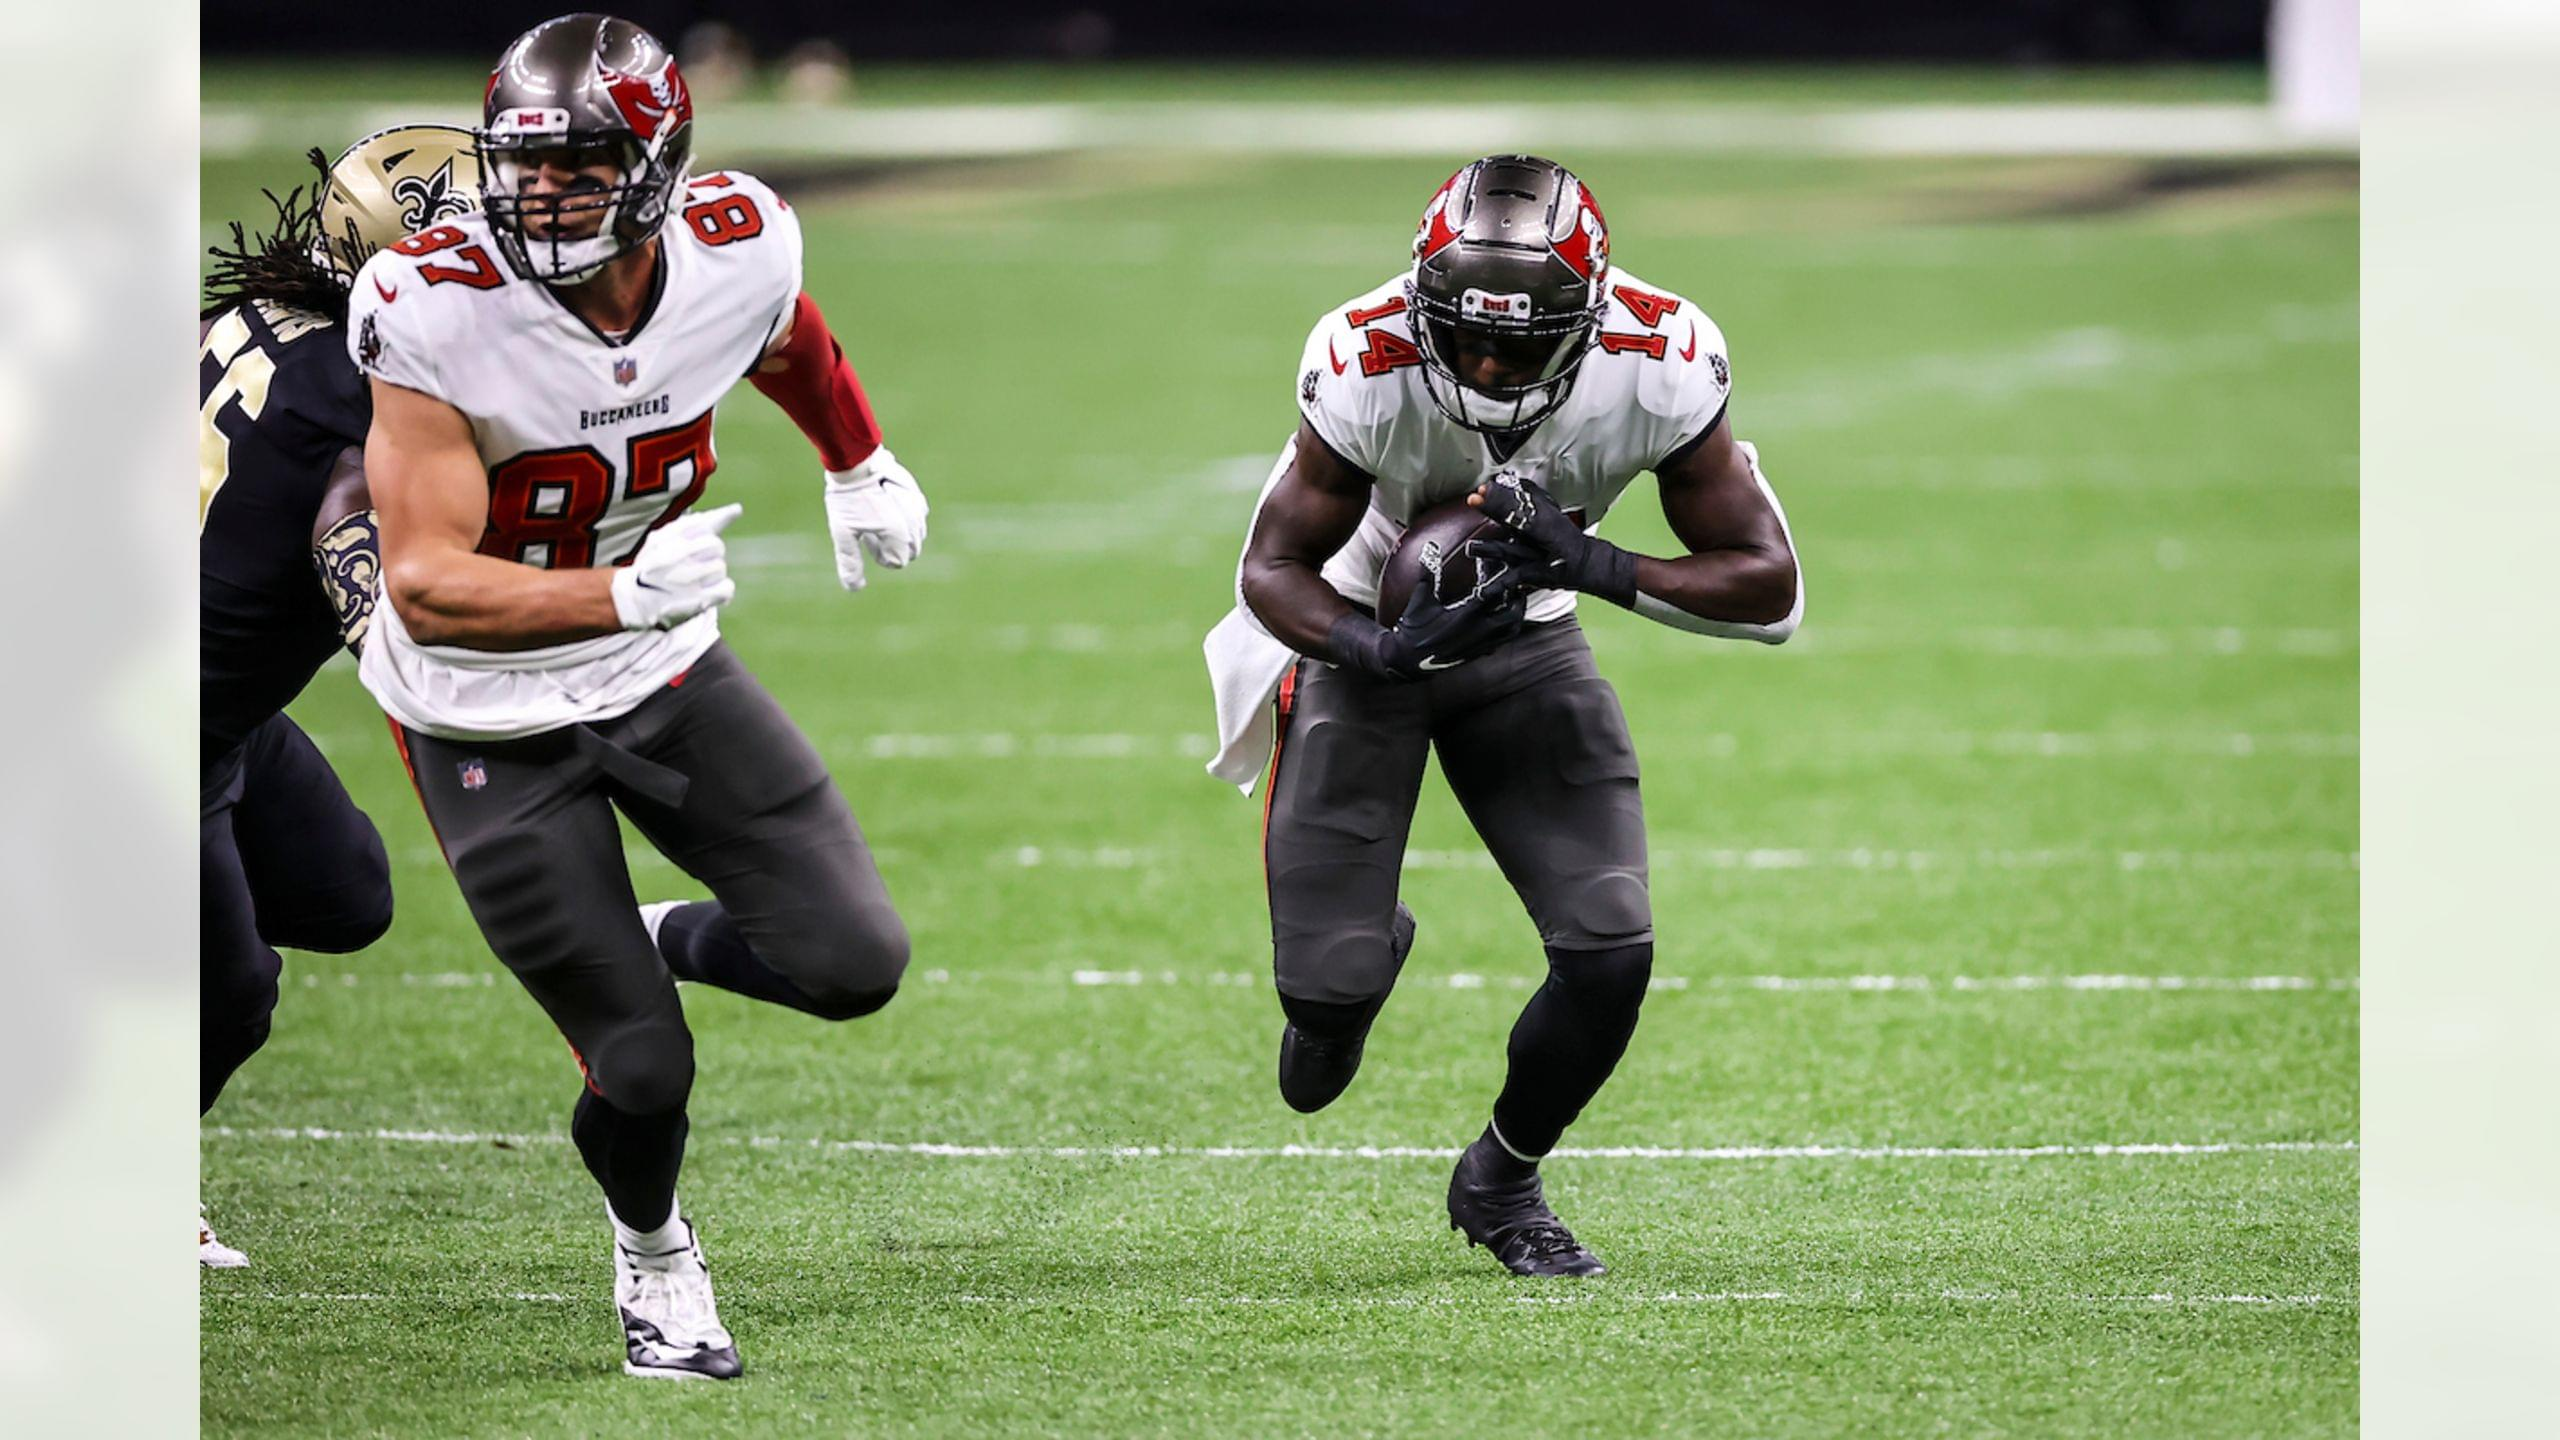 WATCH: NFC Championship Game Preview from TJ Rives – Bucs Sideline Reporter